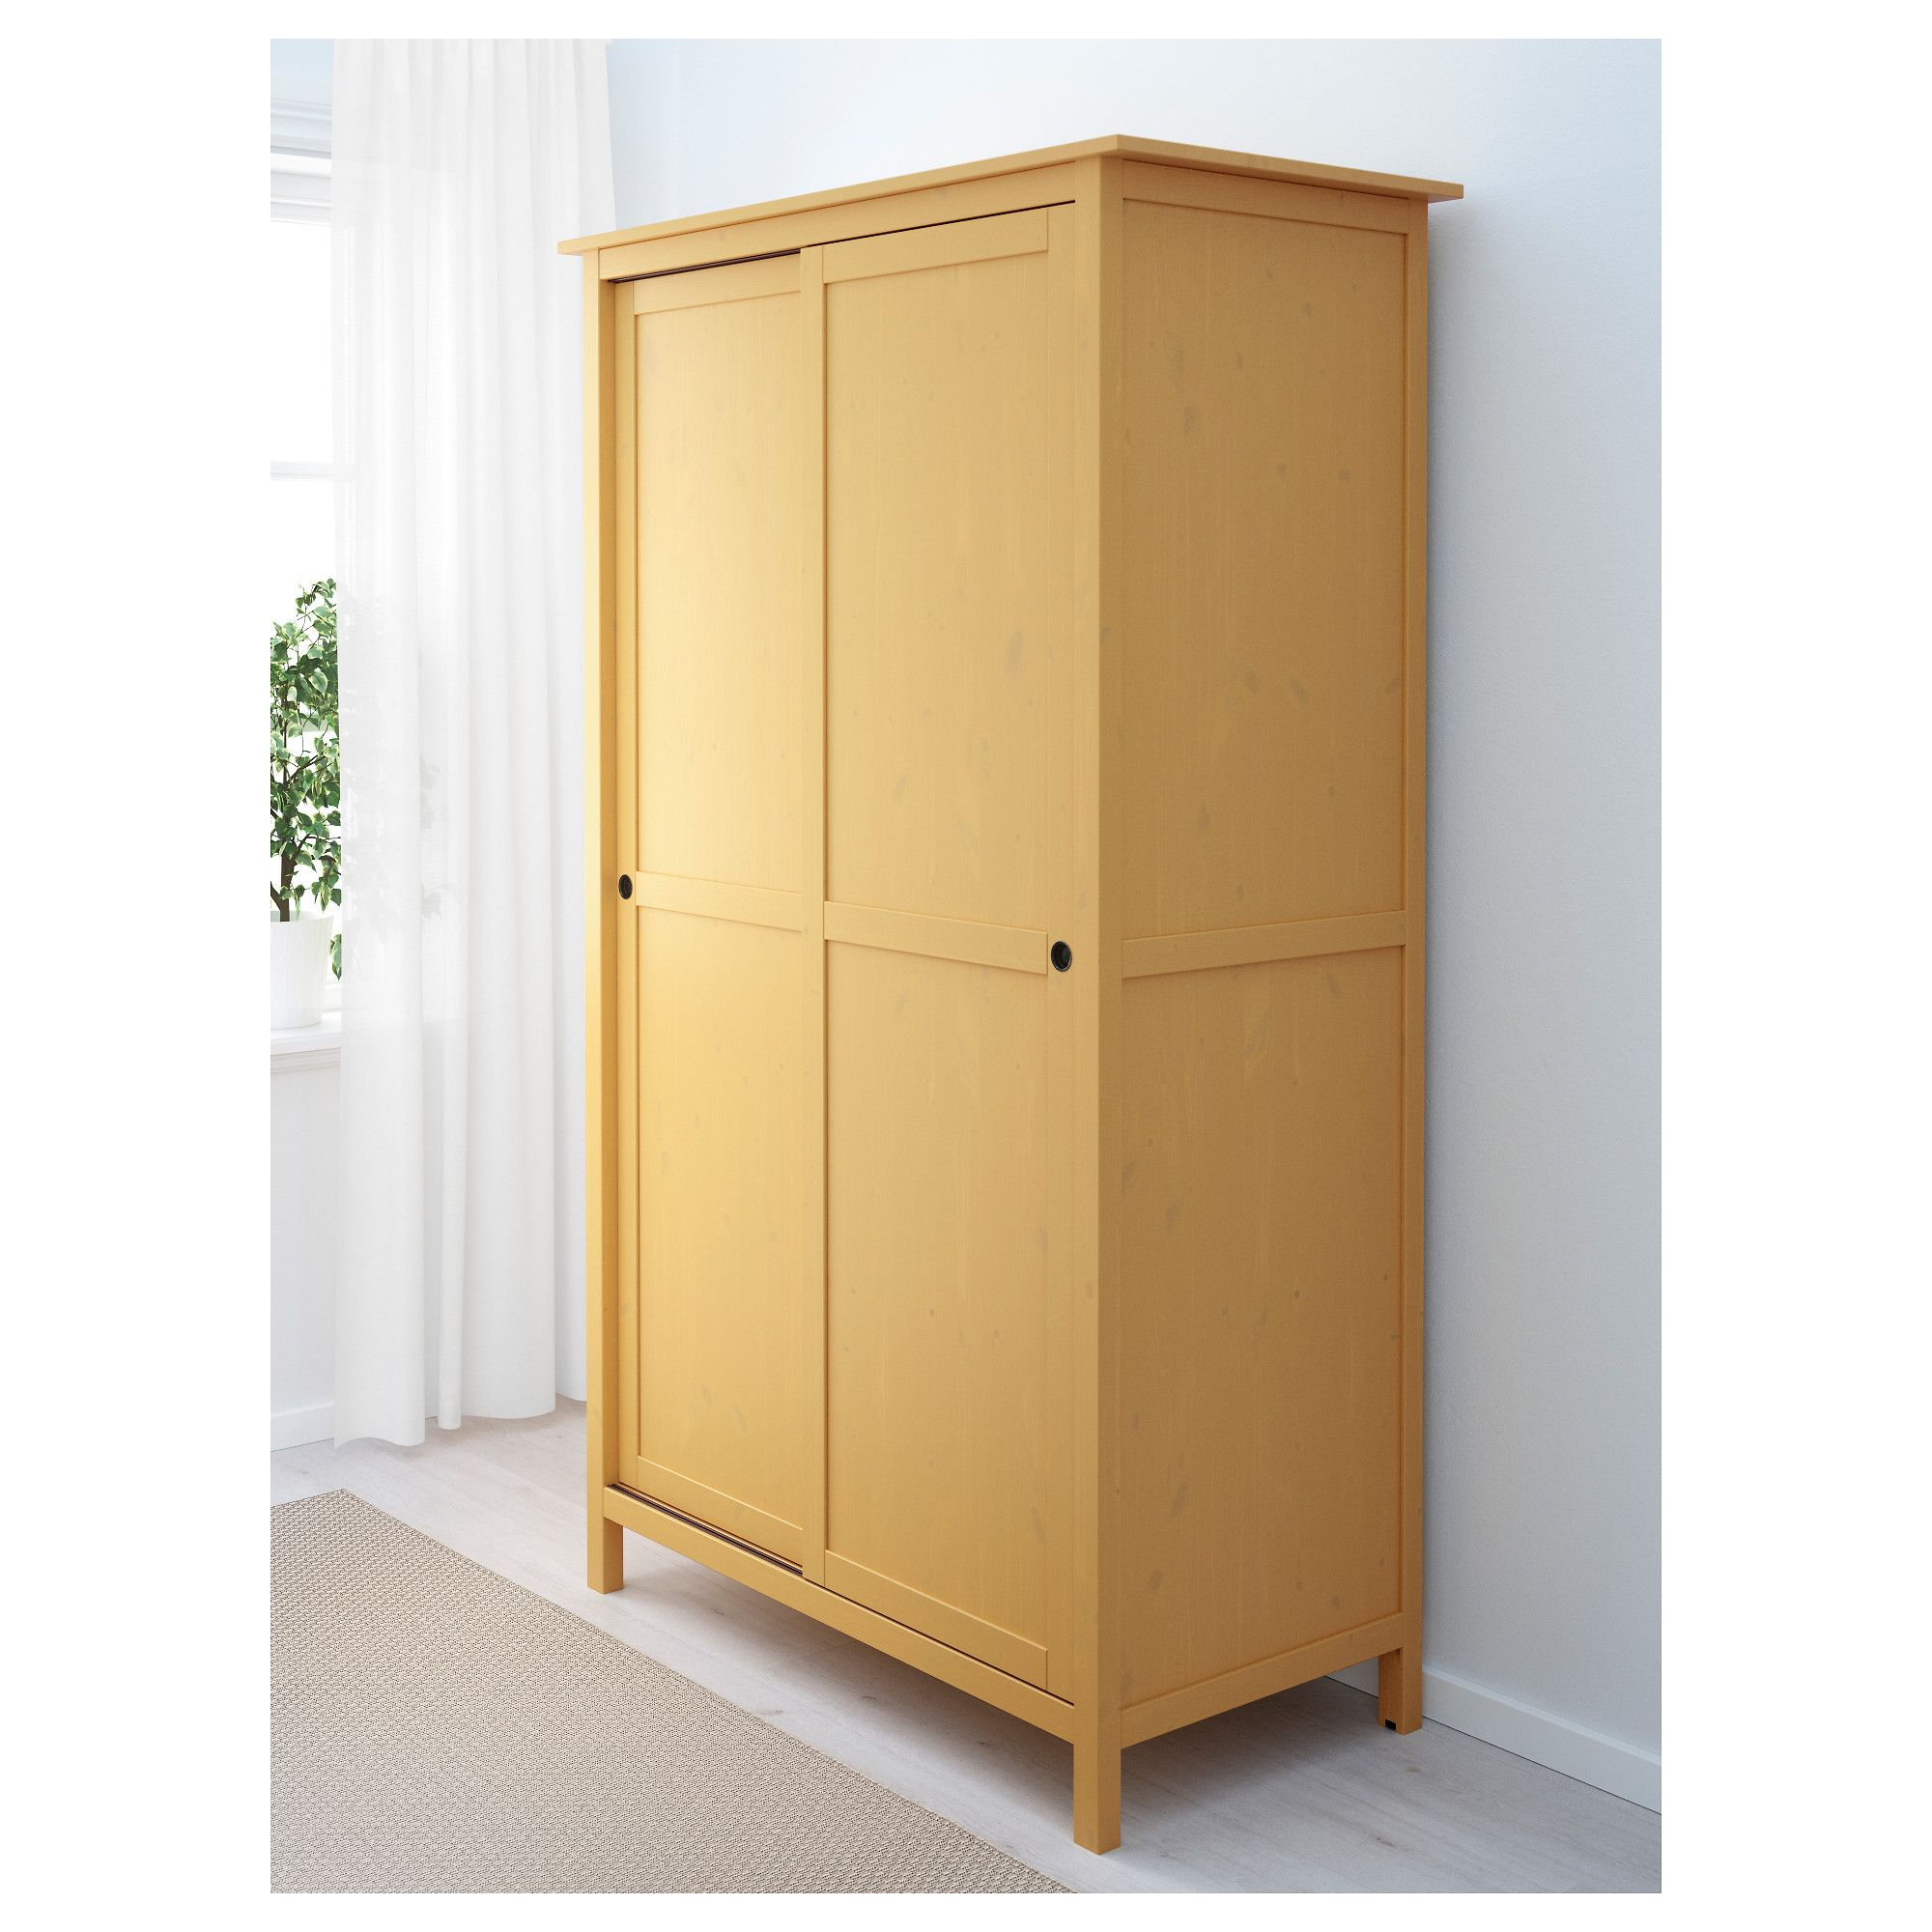 Schrank ikea hemnes  HEMNES Wardrobe with 2 sliding doors Yellow 120x197 cm | Hemnes ...